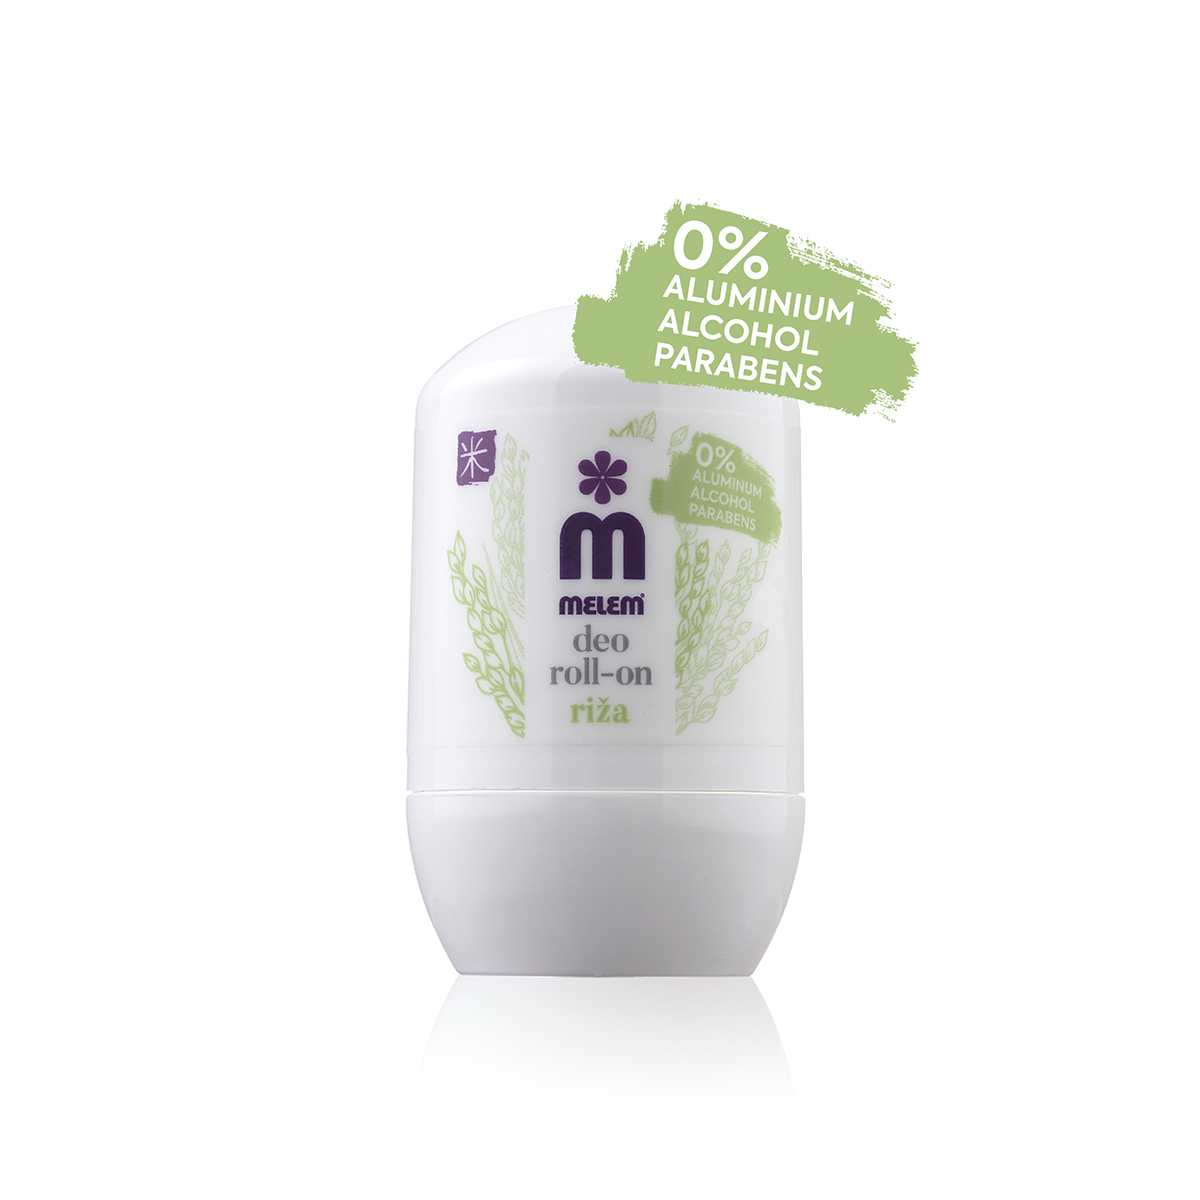 Melem deo roll on riža 50 ml